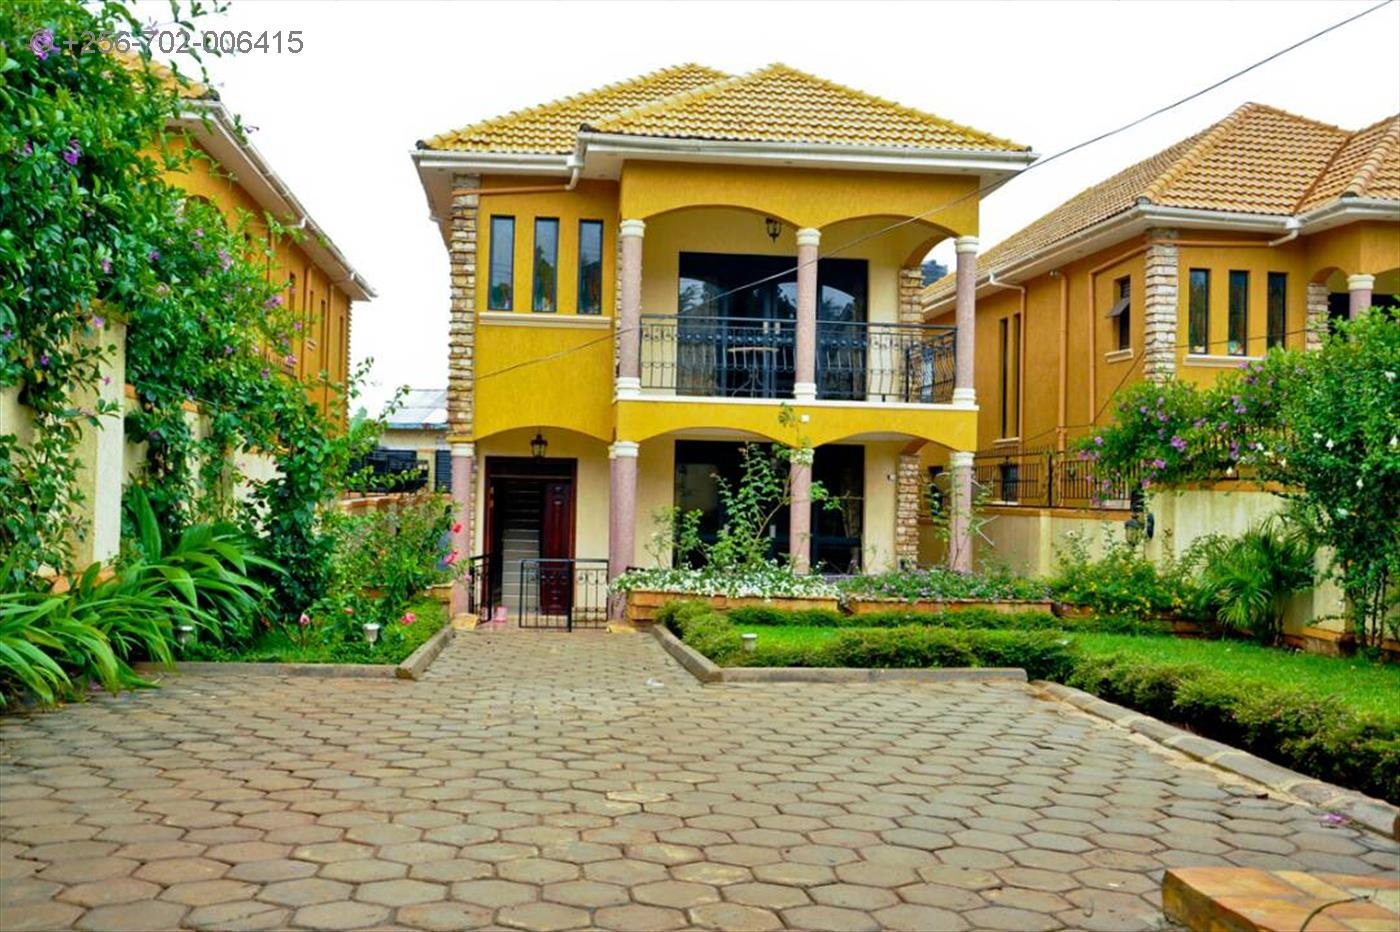 Mansion for sale in Luzira Wakiso